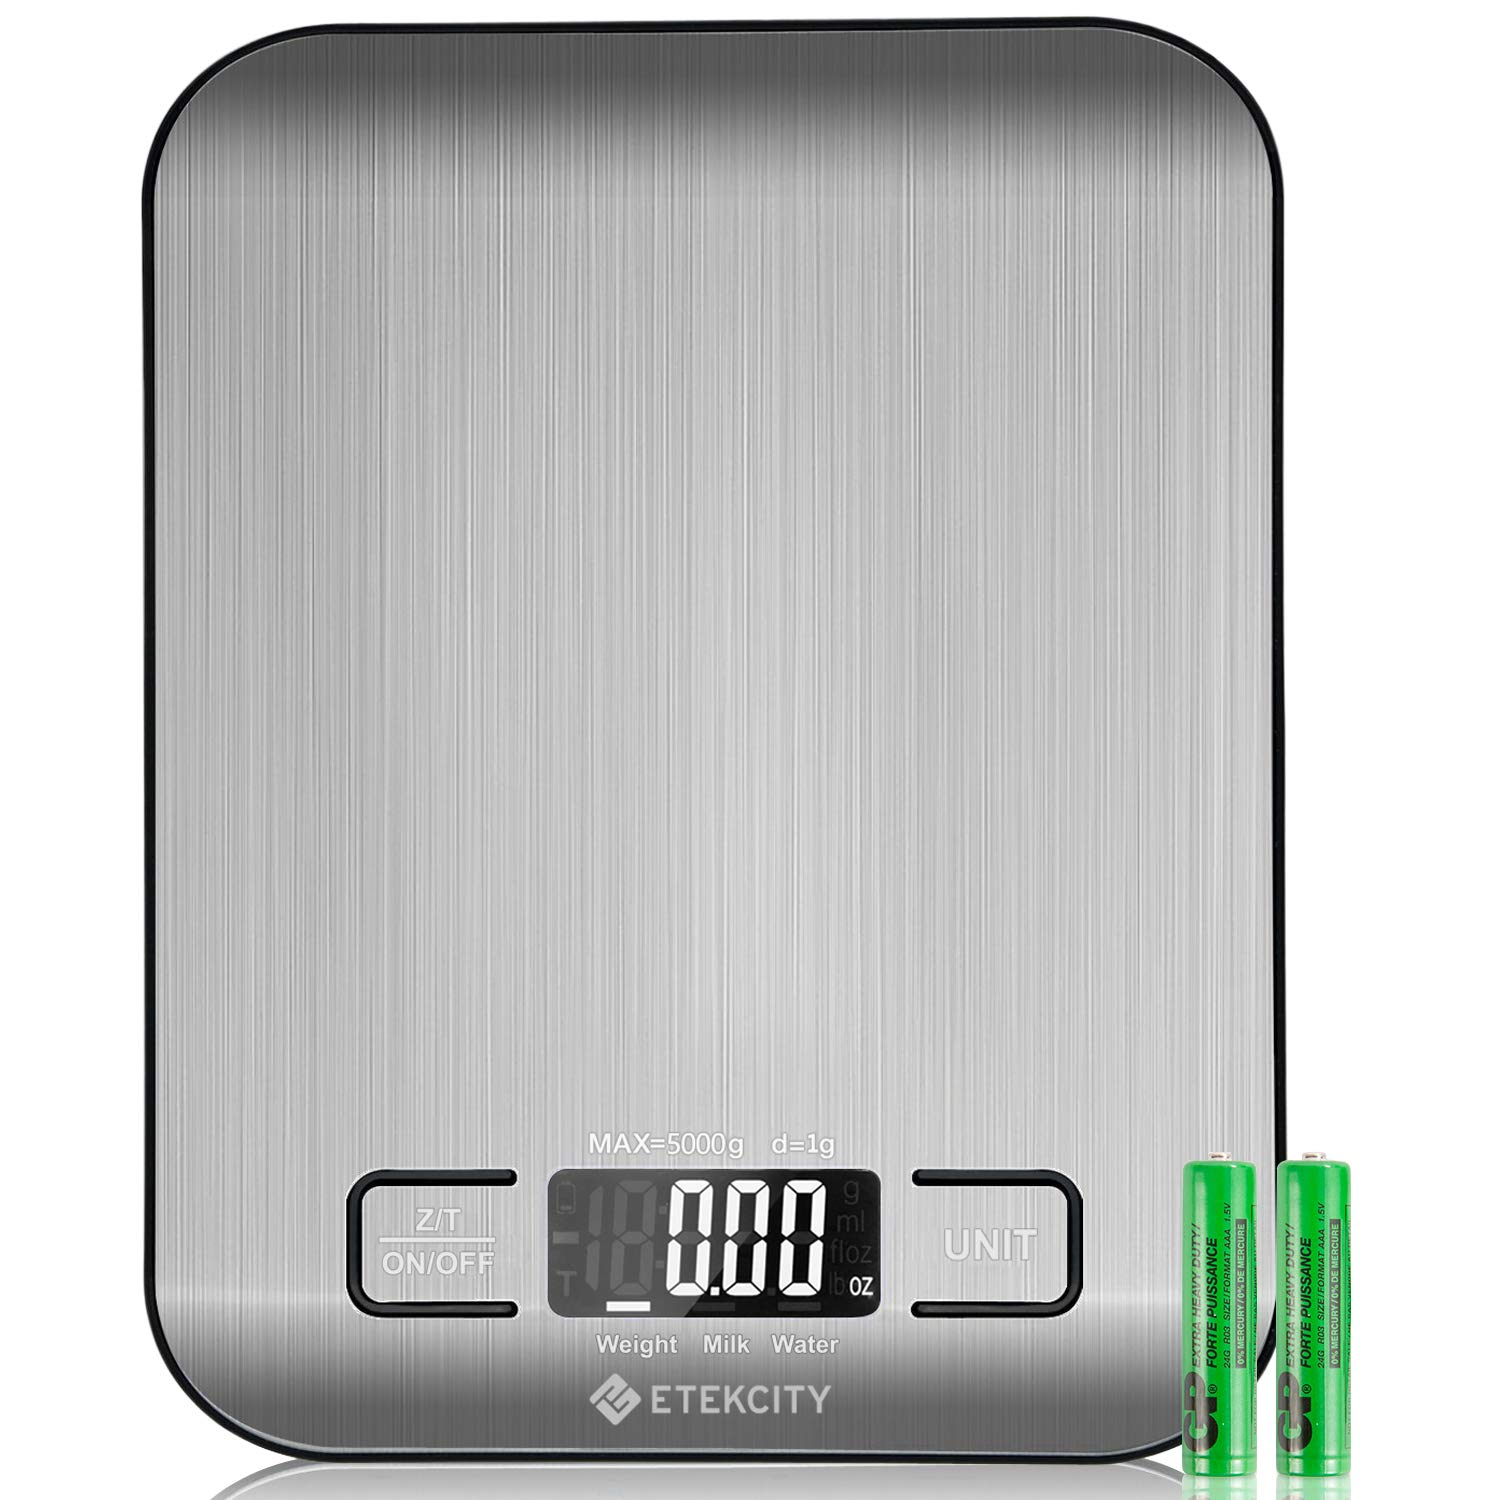 Etekcity Digital Kitchen Scale Multifunction Food Scale, 11lb 5kg, Silver, Stainless Steel (Batteries Included) by Etekcity (Image #1)